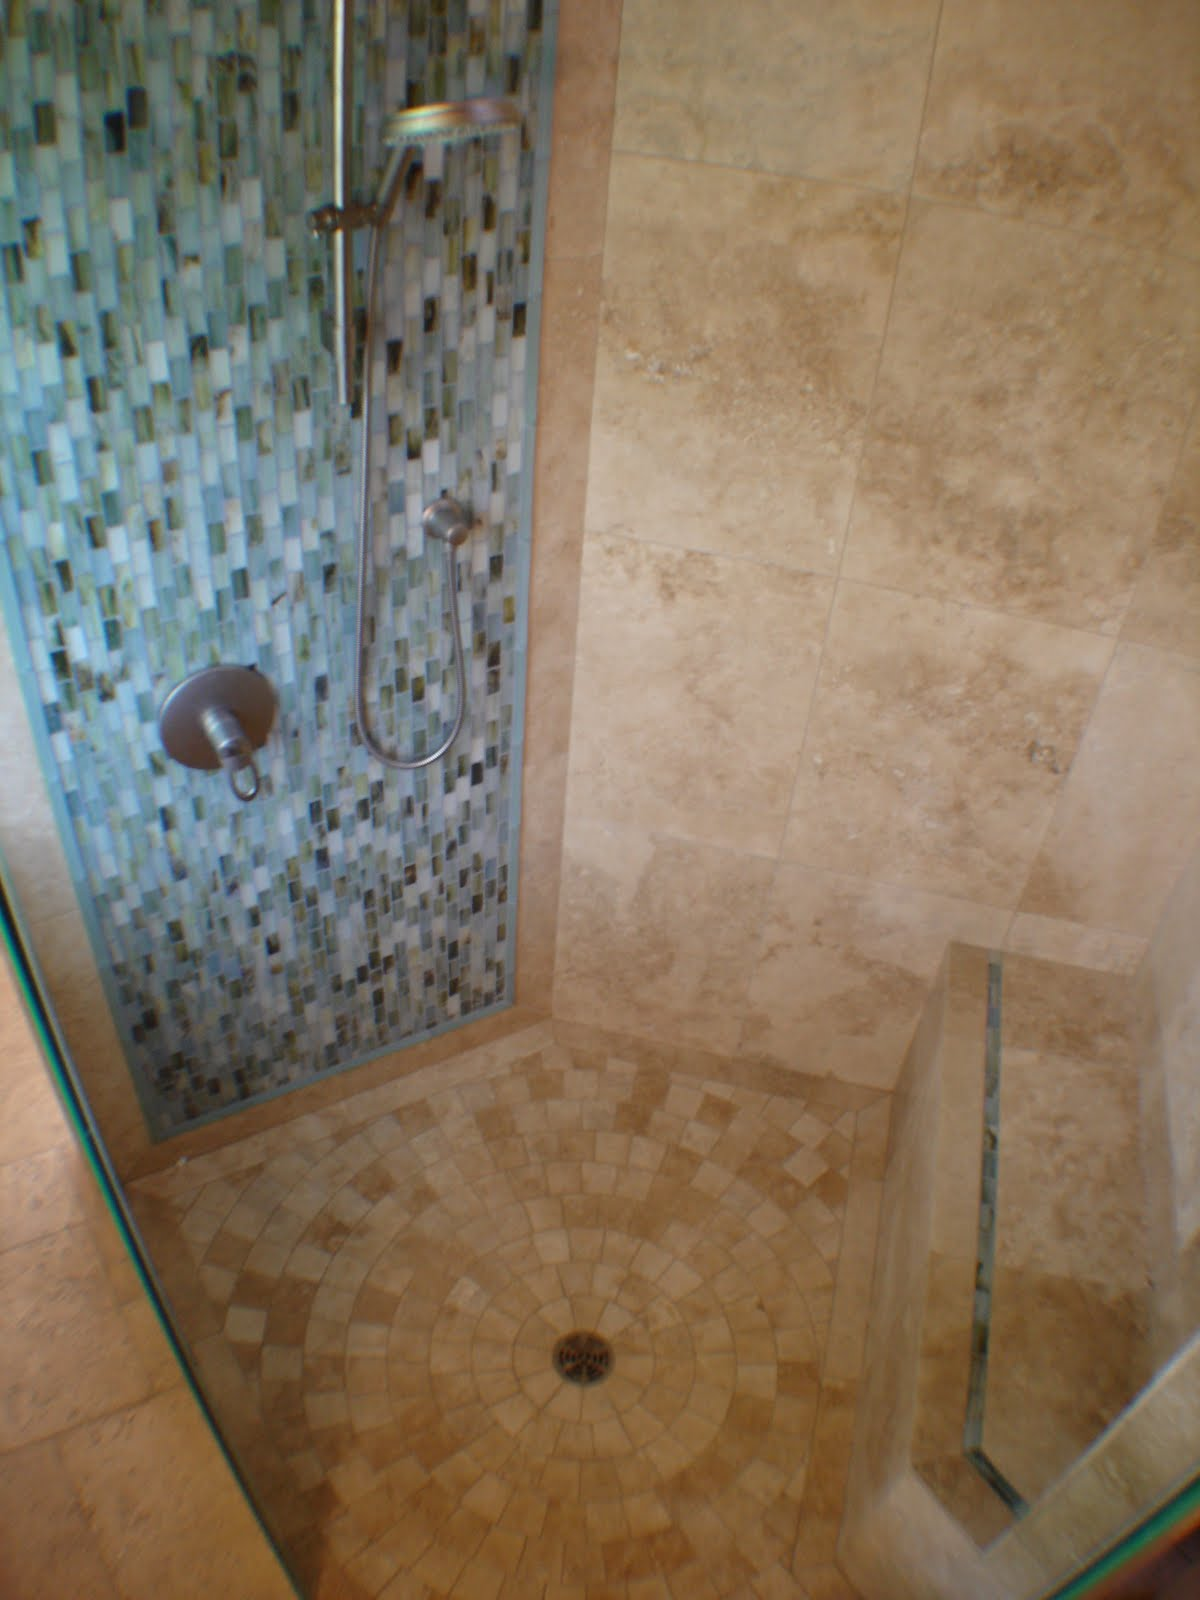 The tile shop design by kirsty 7 18 10 7 25 10 - Bathroom floor and wall tile designs ...